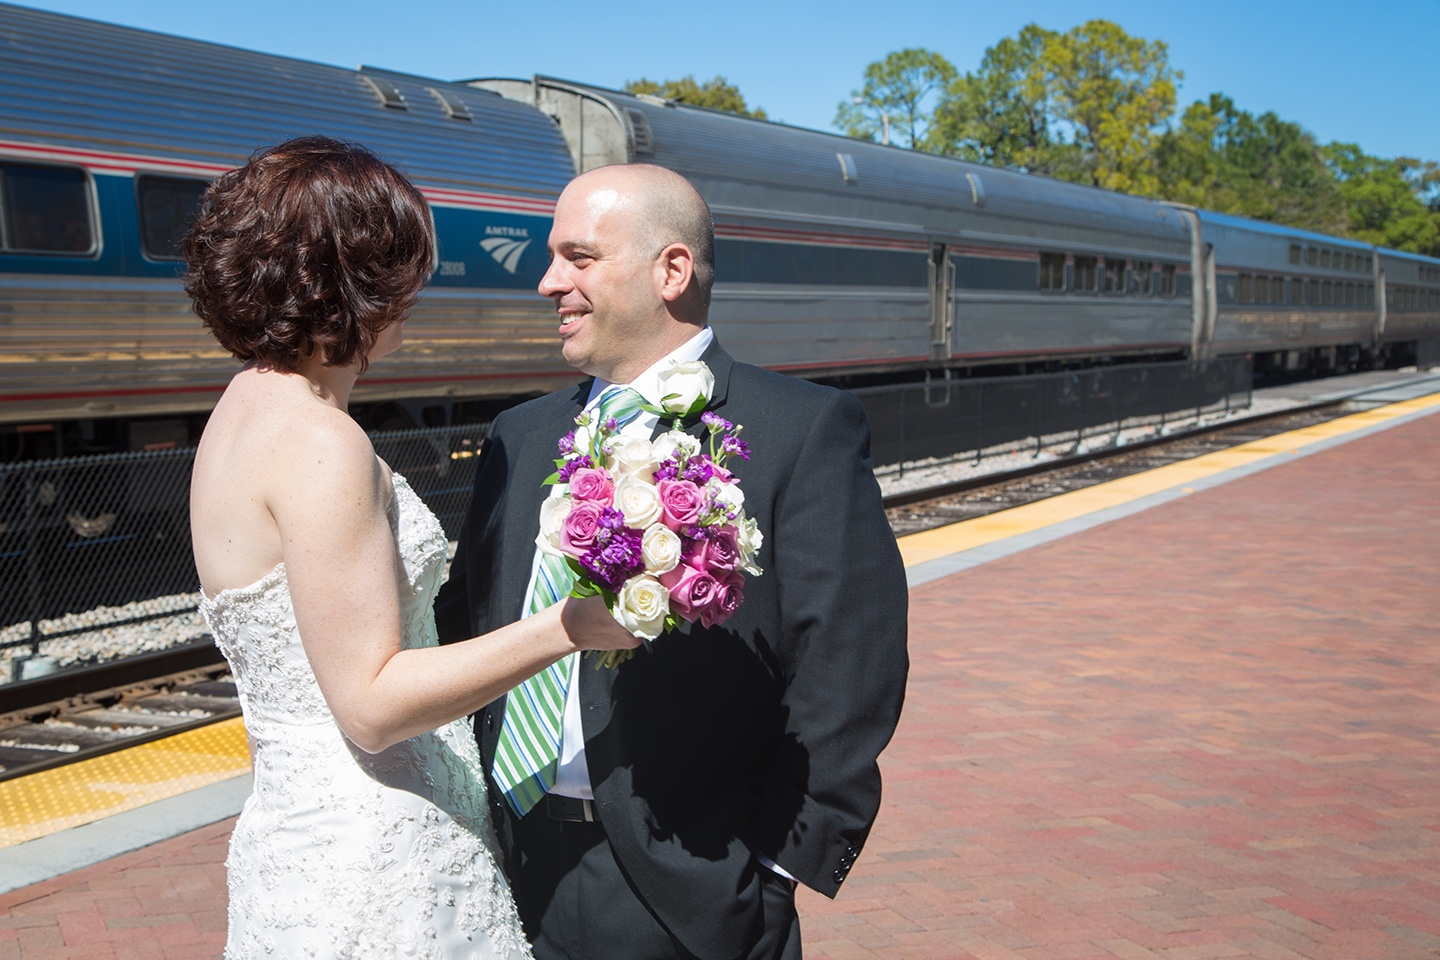 Newlyweds at the Winter Park train station